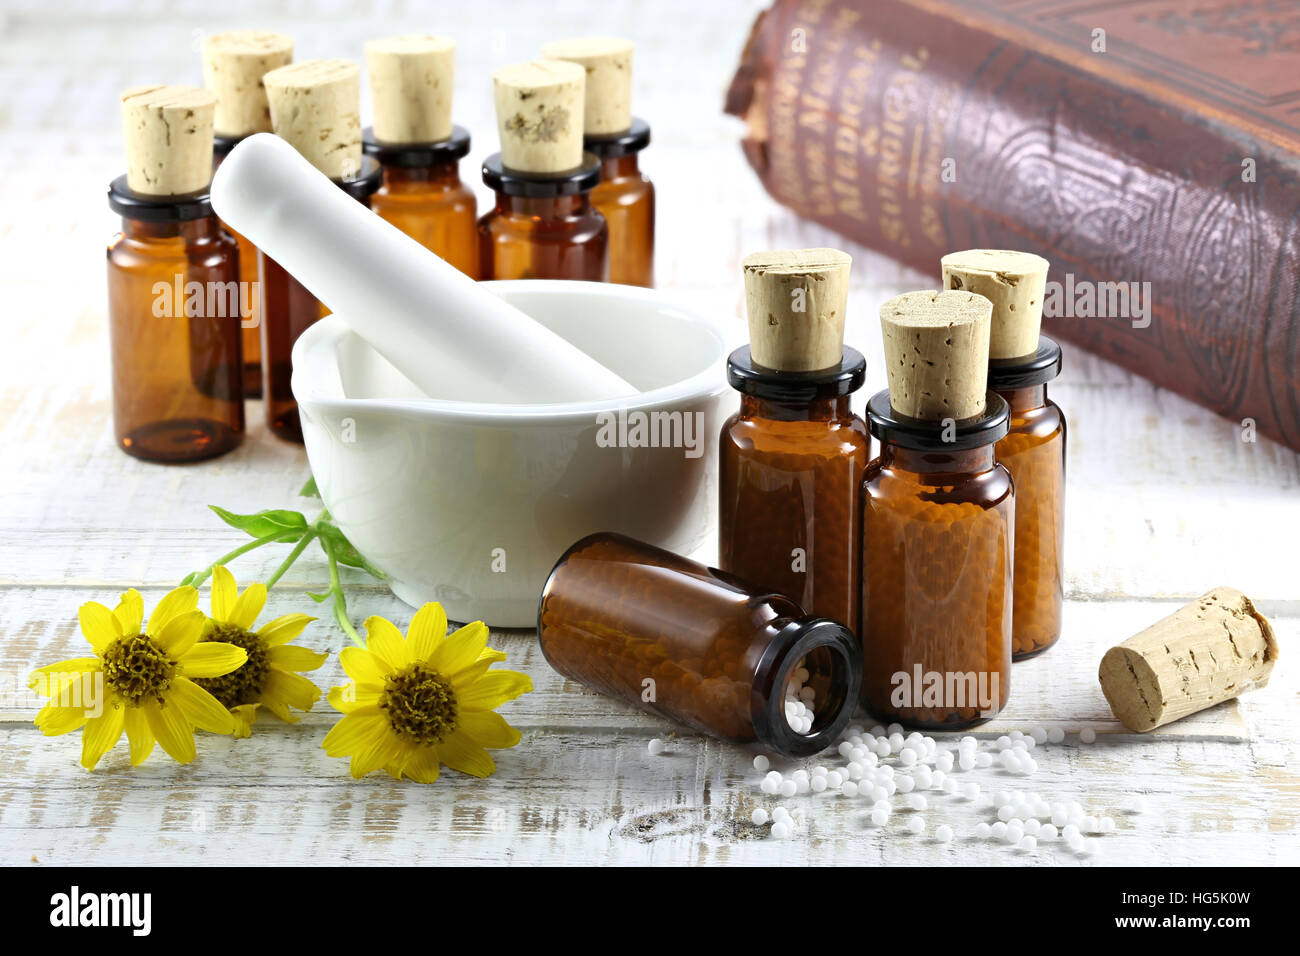 homeopathic arnica pills in brown glass bottles on wooden table - Stock Image